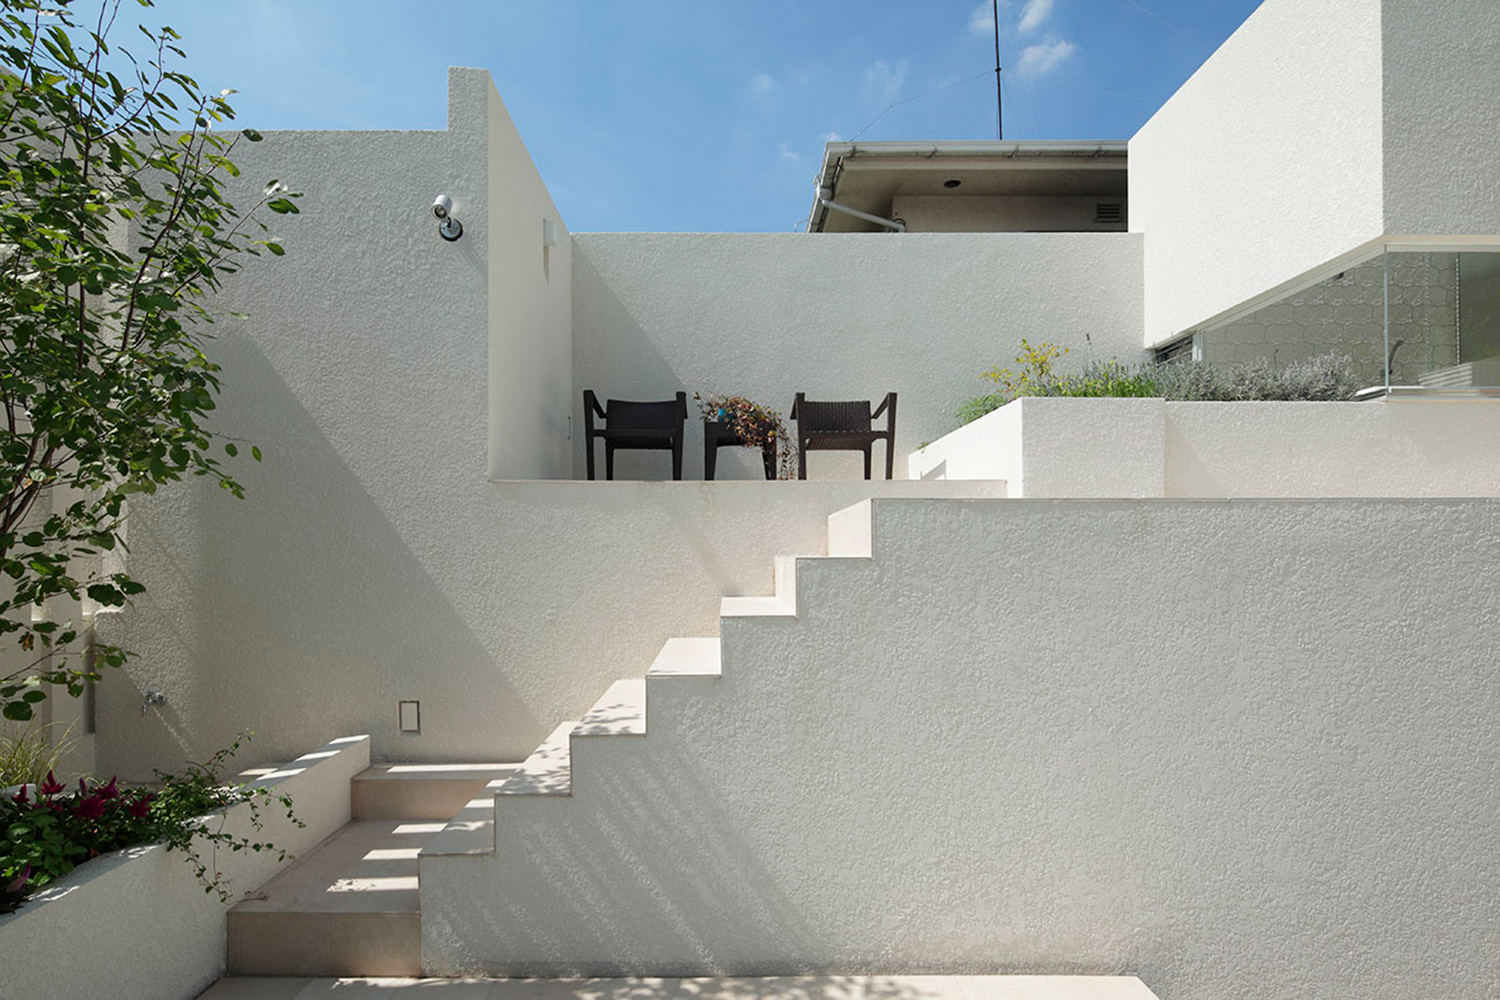 A terrace that is continuous with a white outer wall and a different level. A rich place like a Mediterranean cliff settlement. }